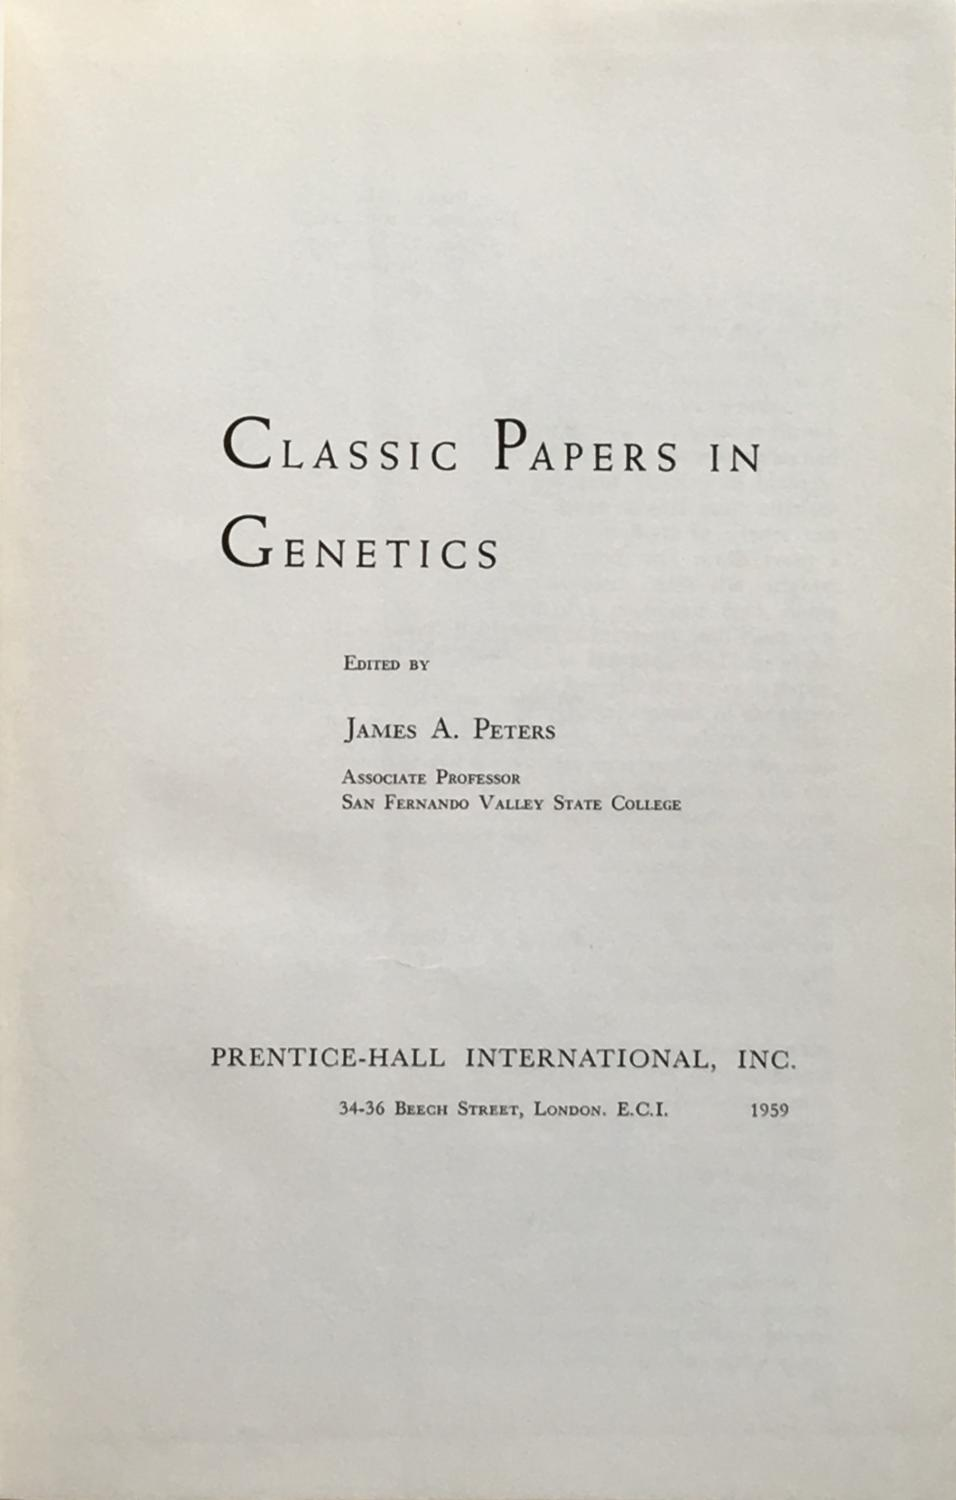 Gregor Mendel's classic paper and the nature of science in genetics courses